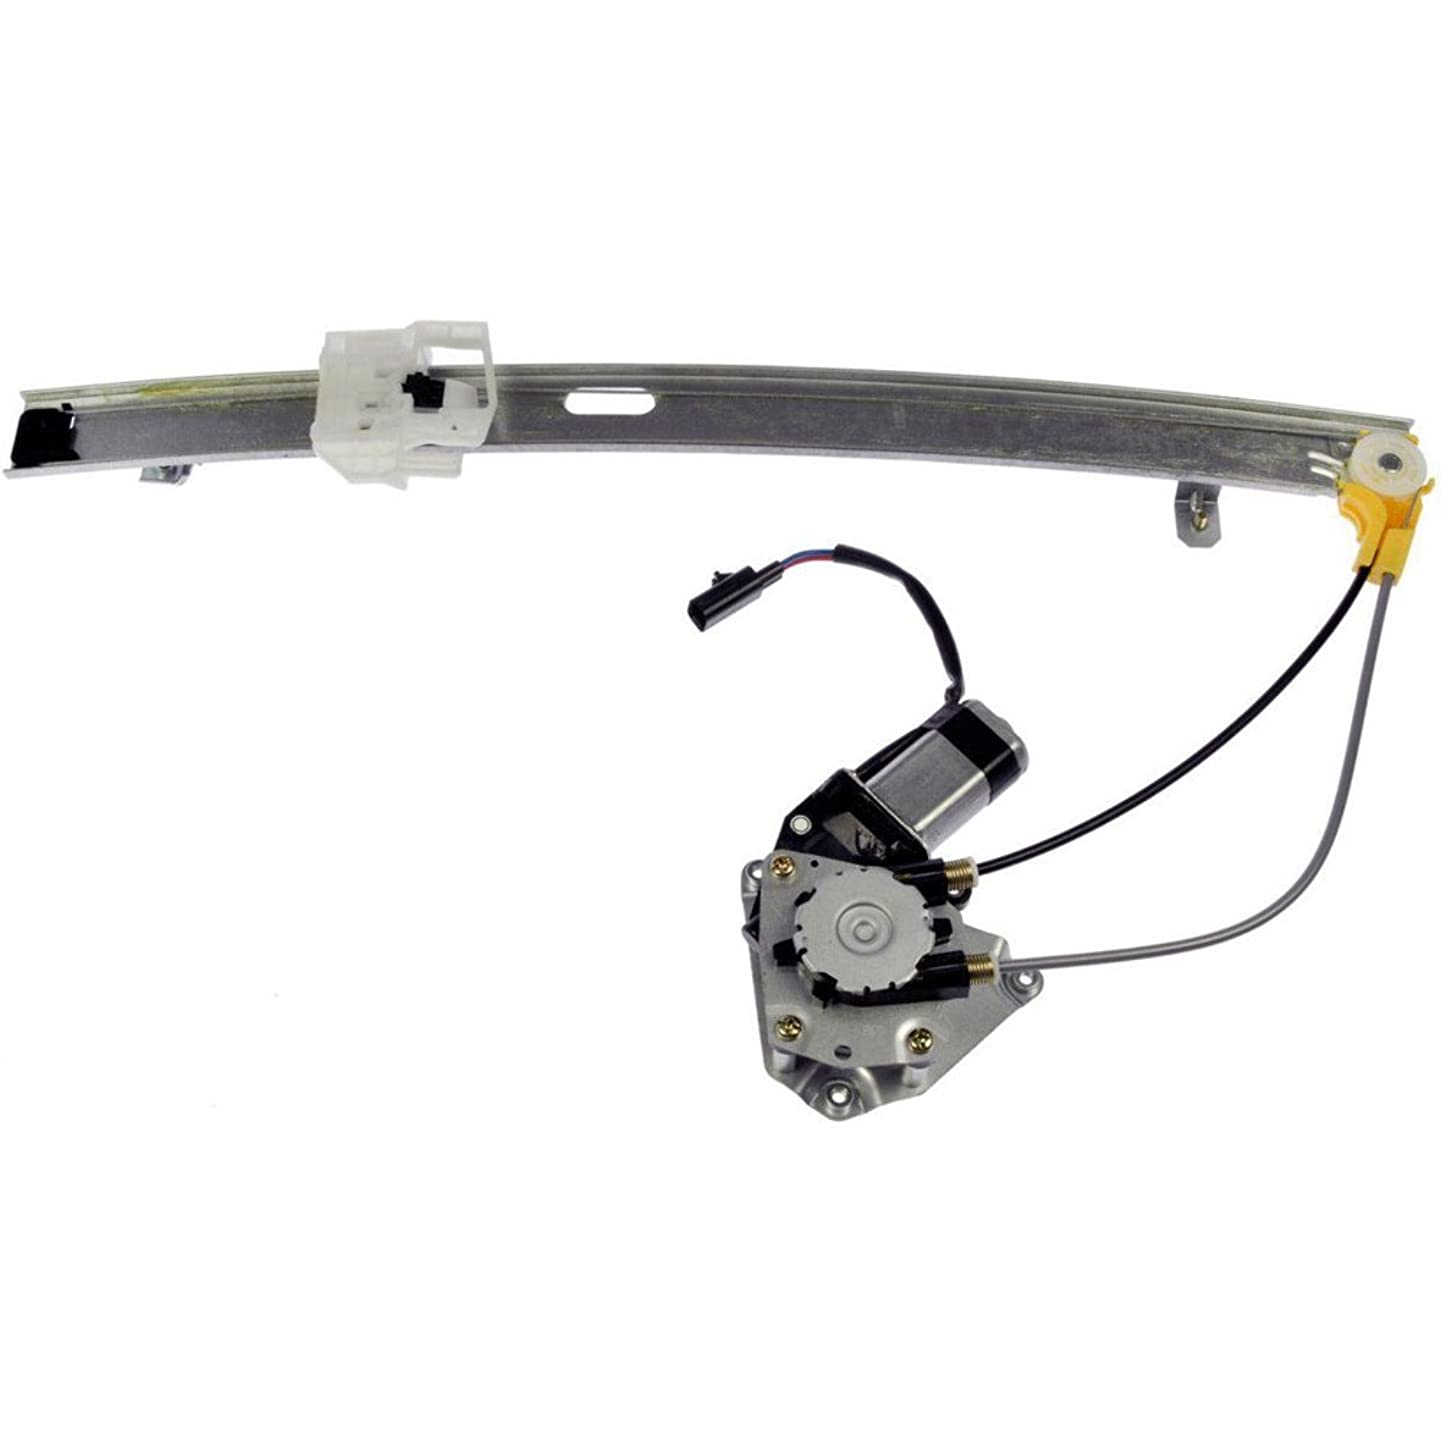 MILLION PARTS Rear Right Side Power Window Regulator with Motor for 2006 2007 Jeep Liberty Sport Utility 4-Door